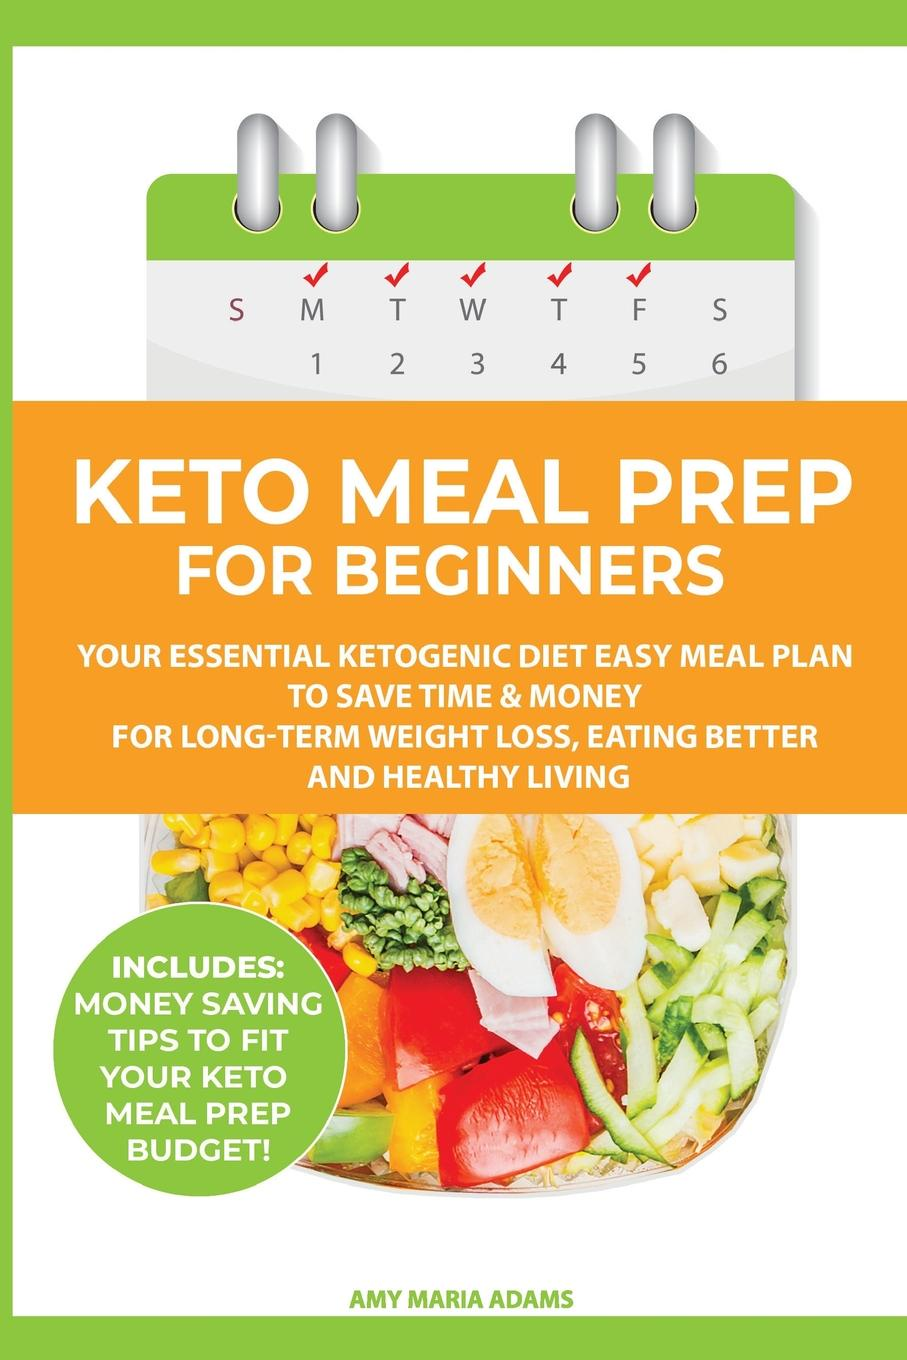 Keto Meal Prep for Beginners. Your Essential Ketogenic Diet Easy Meal Plan to Save Time & Money for Long-Term Weight Loss, Eating Better and Healthy Living (PLUS: Easy Meal Prep Ideas on a Budget)